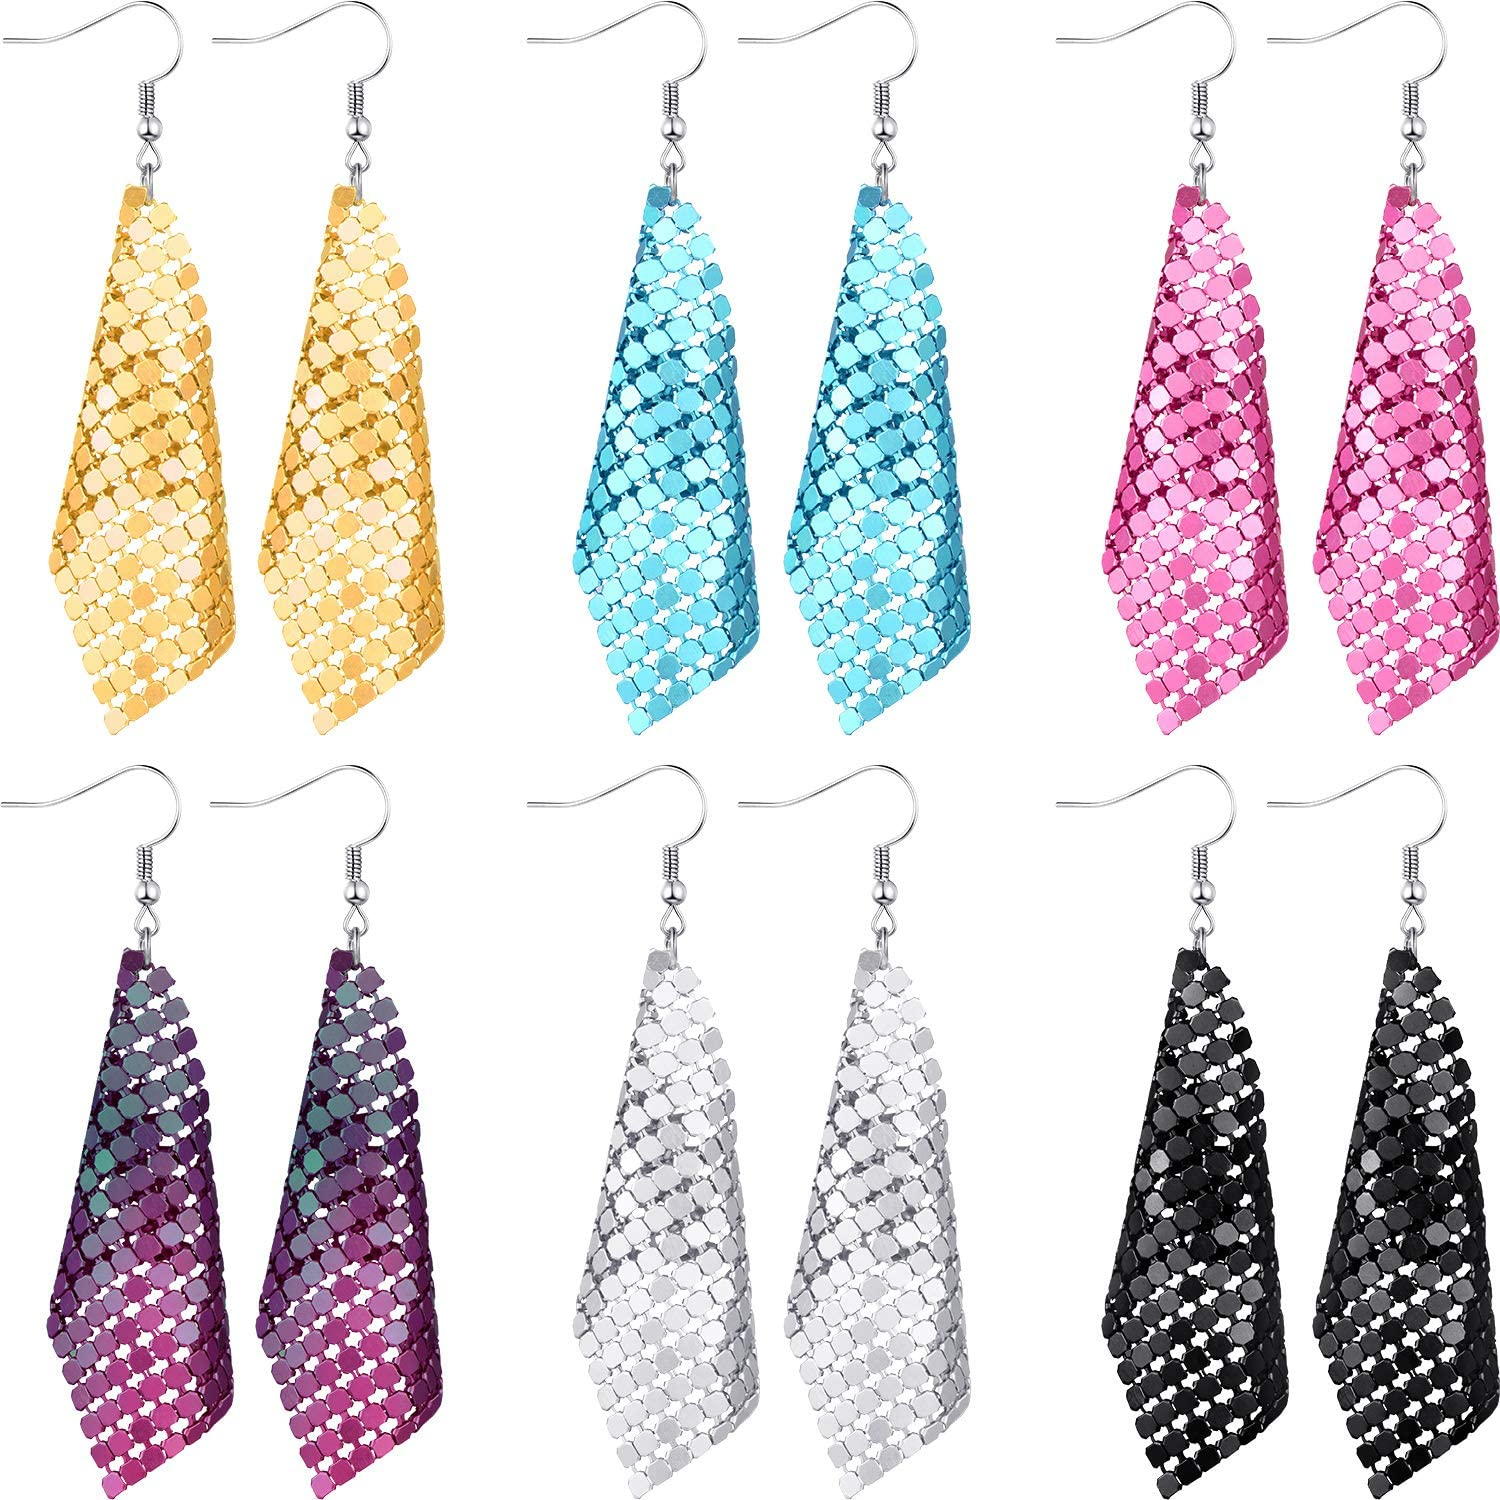 6 Pairs Sequin Dangle Earrings Mesh Grid Tassel Drop Earrings Colorful Sequin Earrings for Women